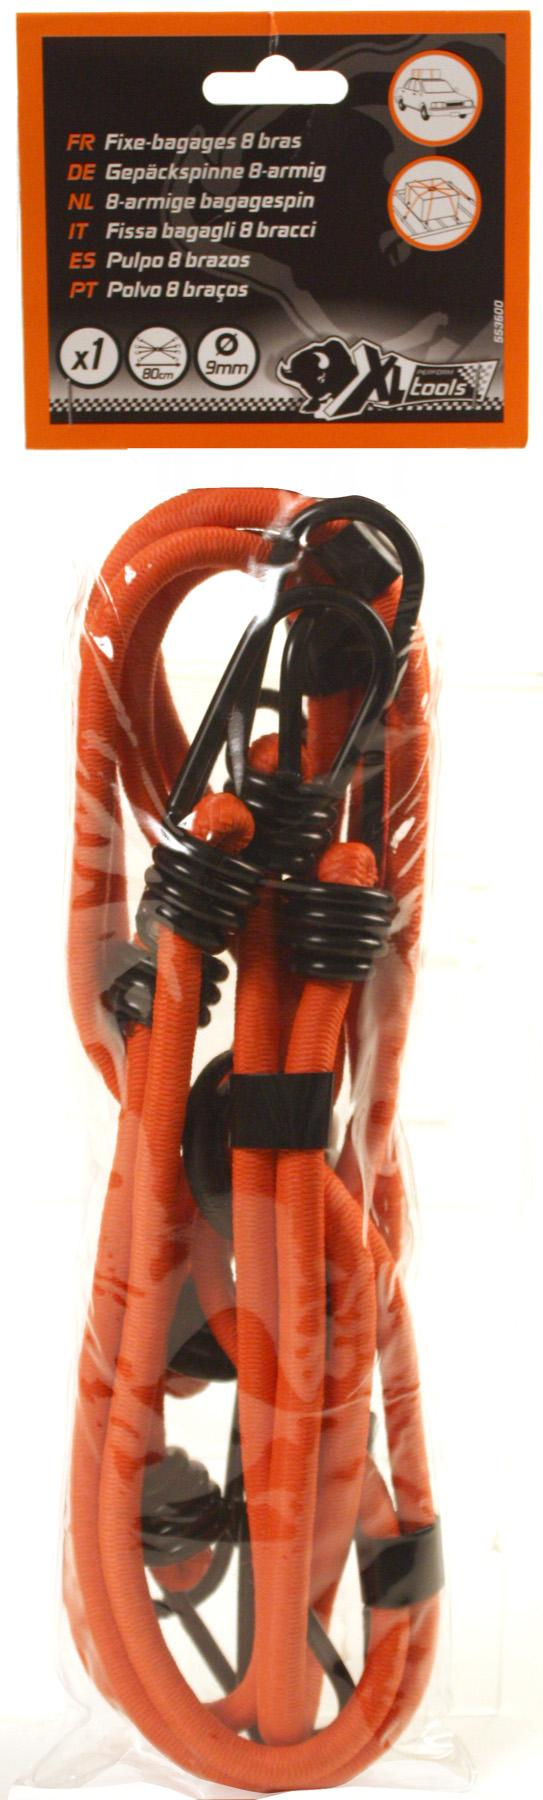 Bungee cords XL 553600 expert knowledge